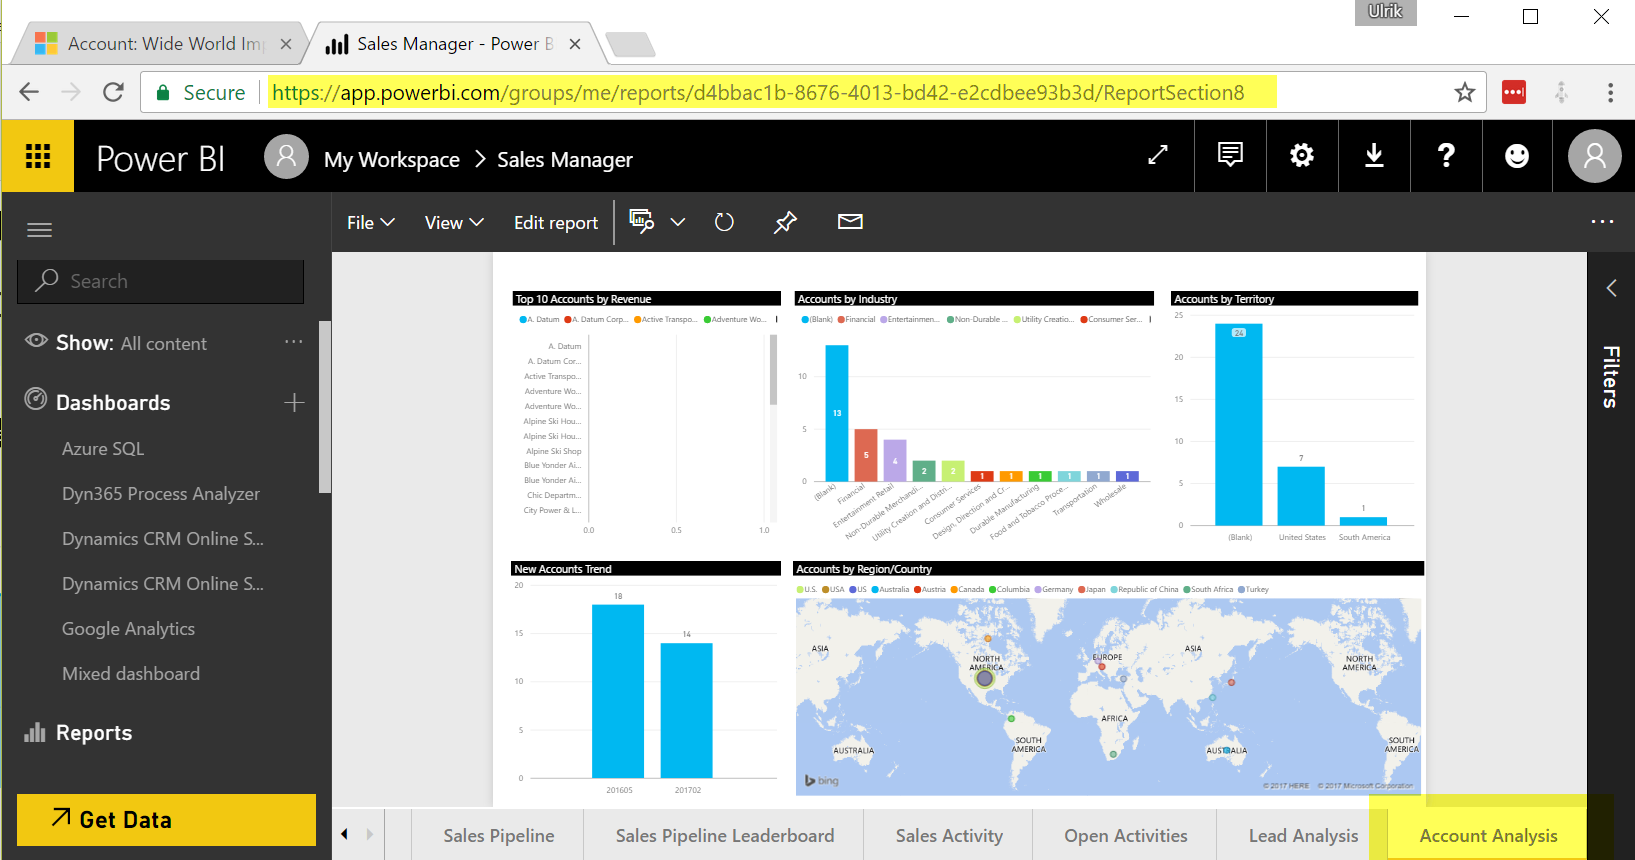 Record Specific Power BI Reports in Dynamics 365 (only one